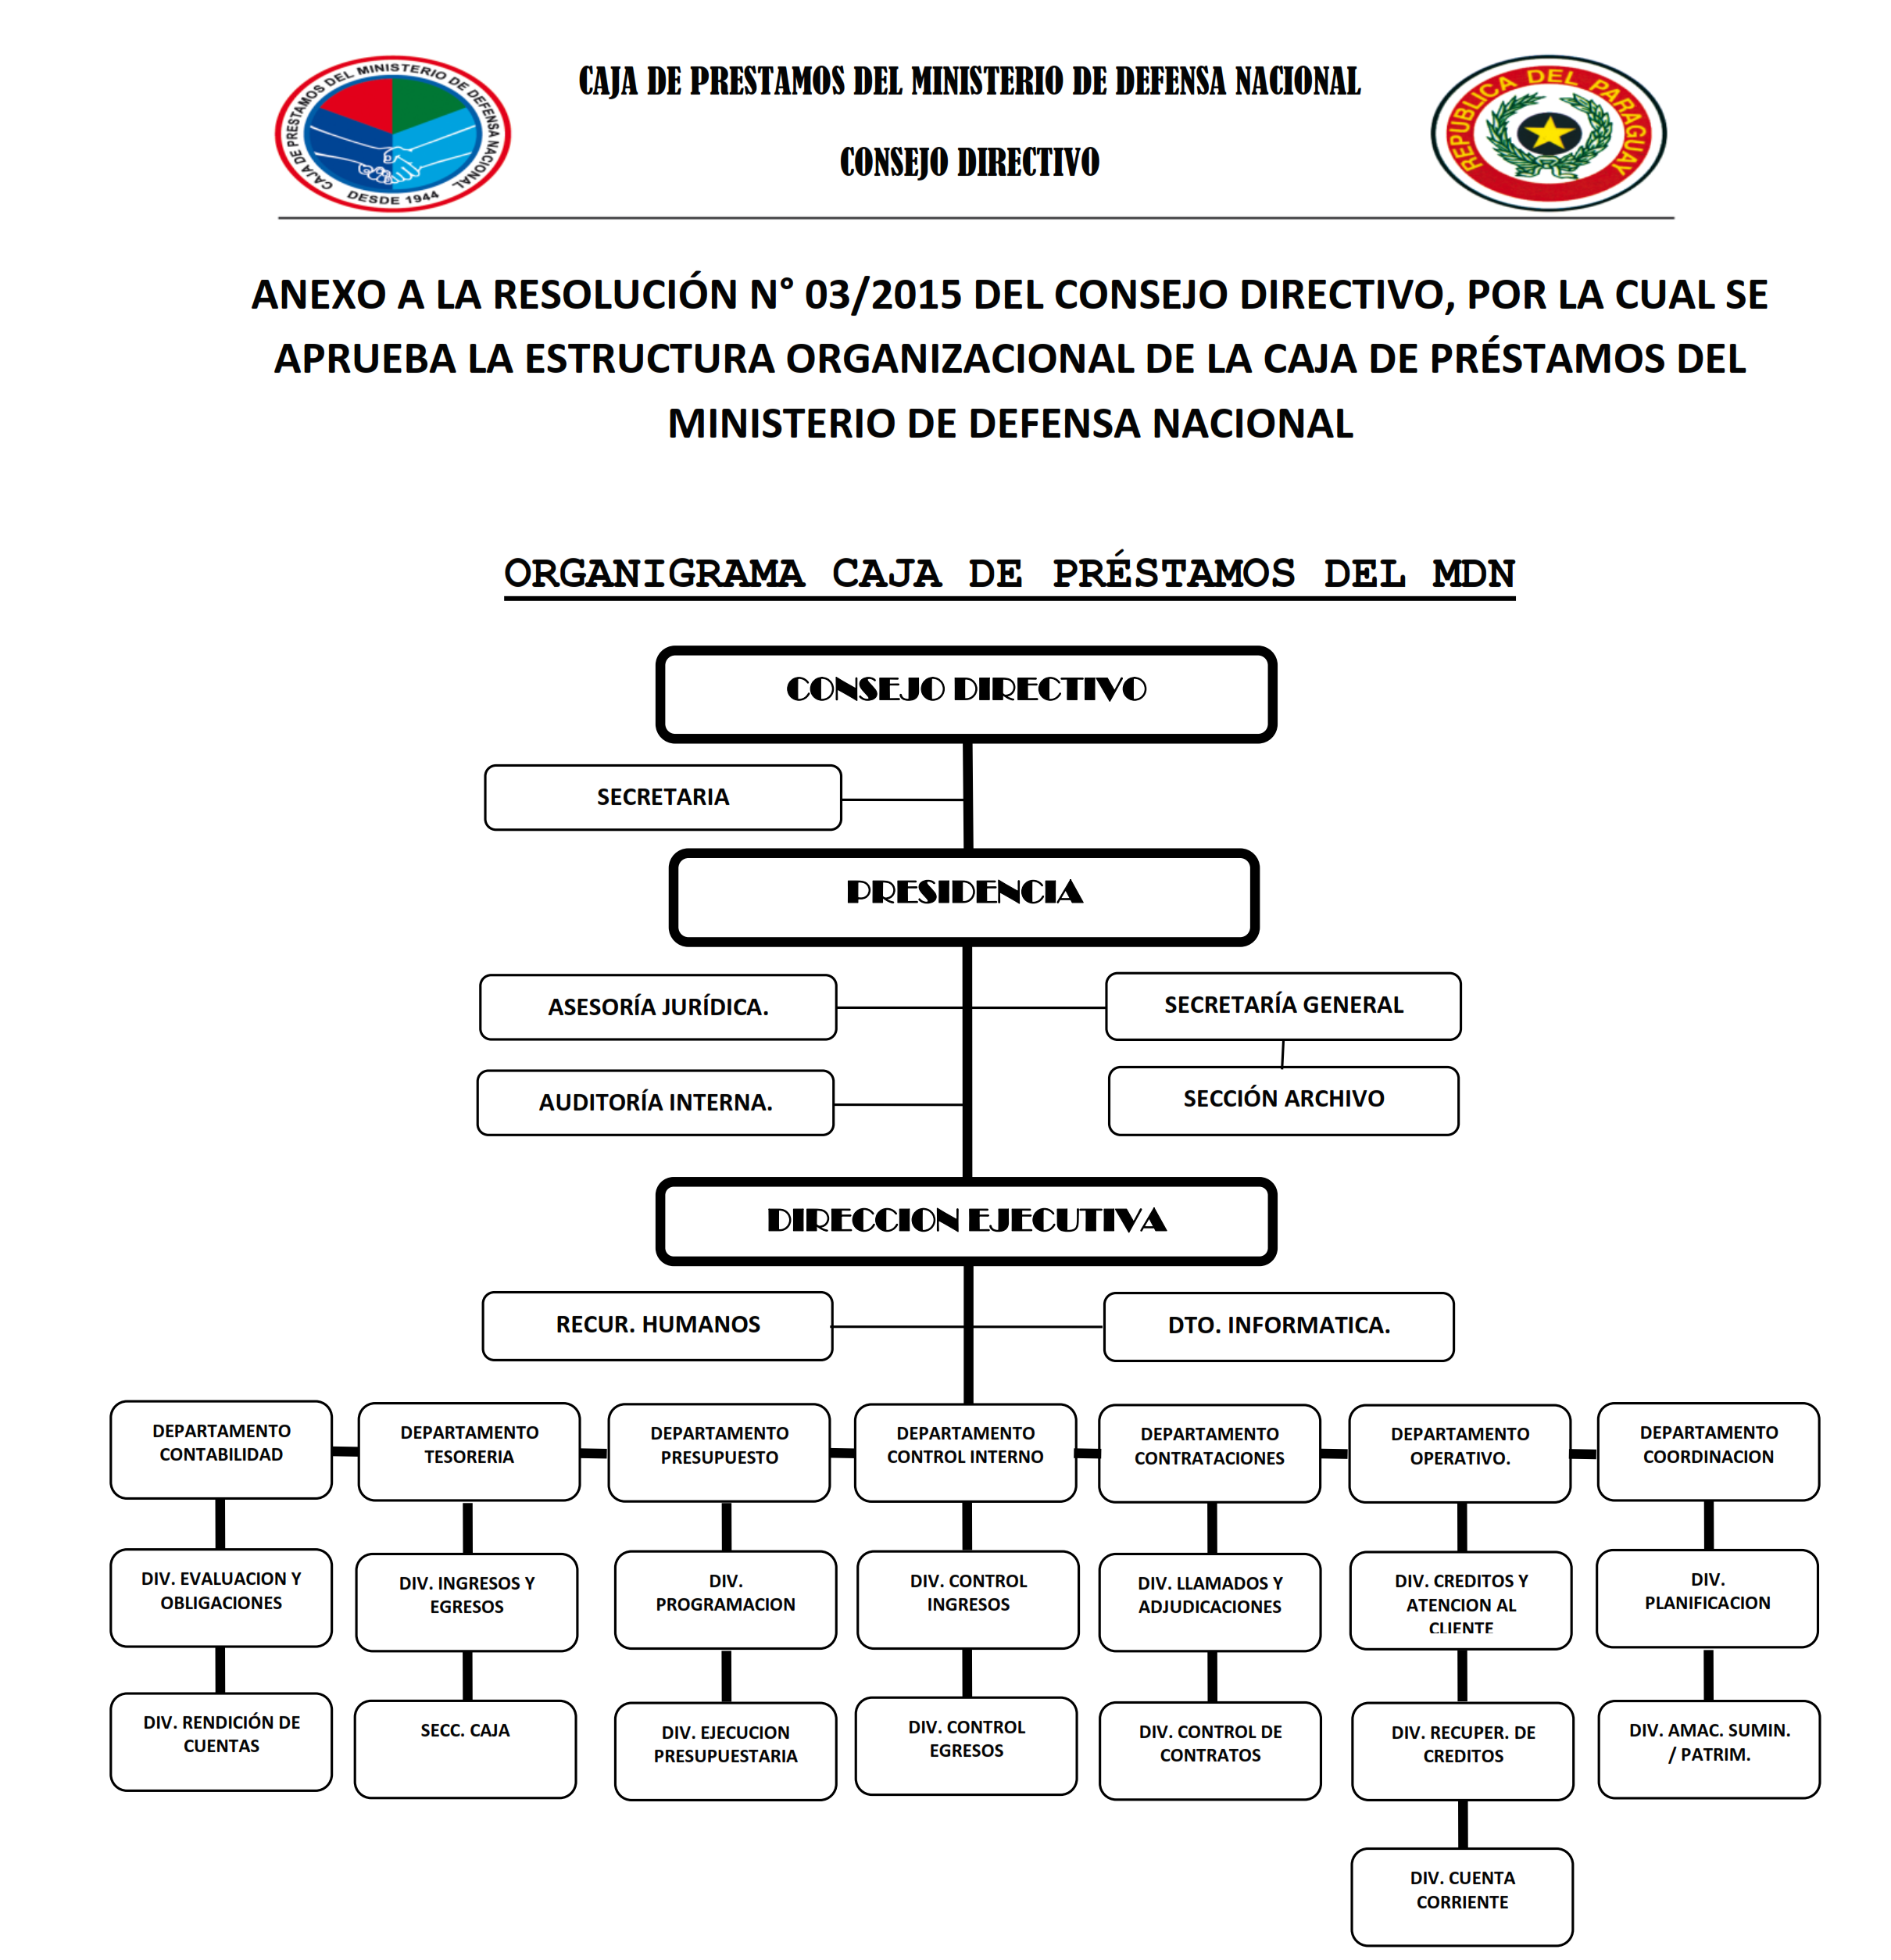 7_-_Mision_Vision_Valores3_001.png